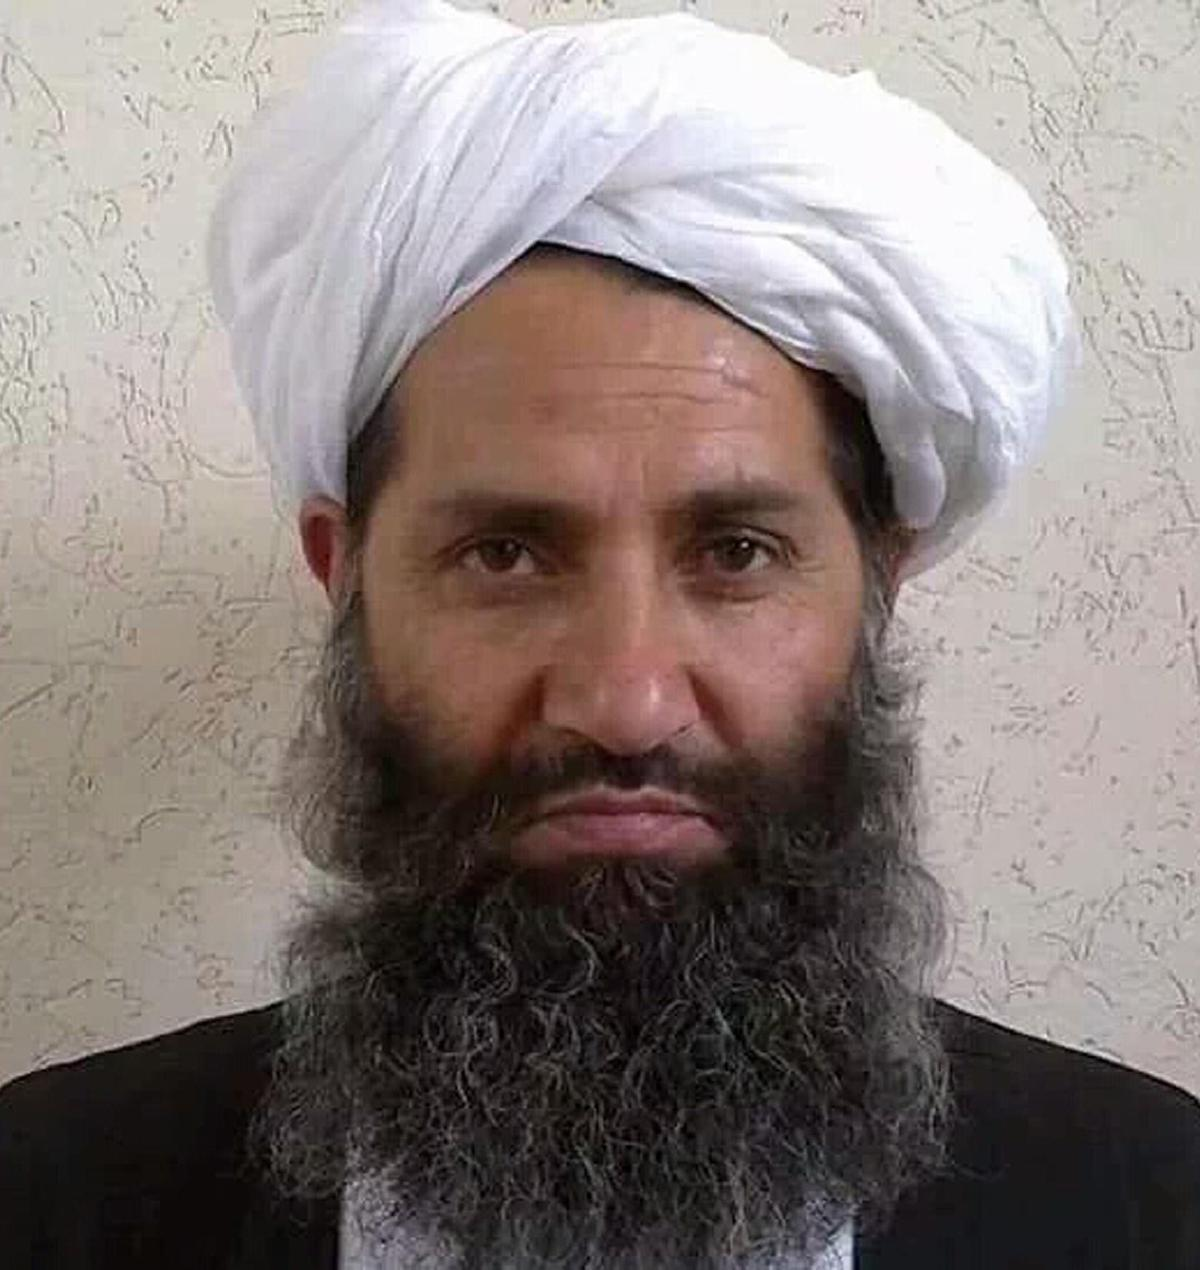 Explained: Why Taliban released only one photo of Hibatullah Akhundzada &  Why his whereabouts are a secret?